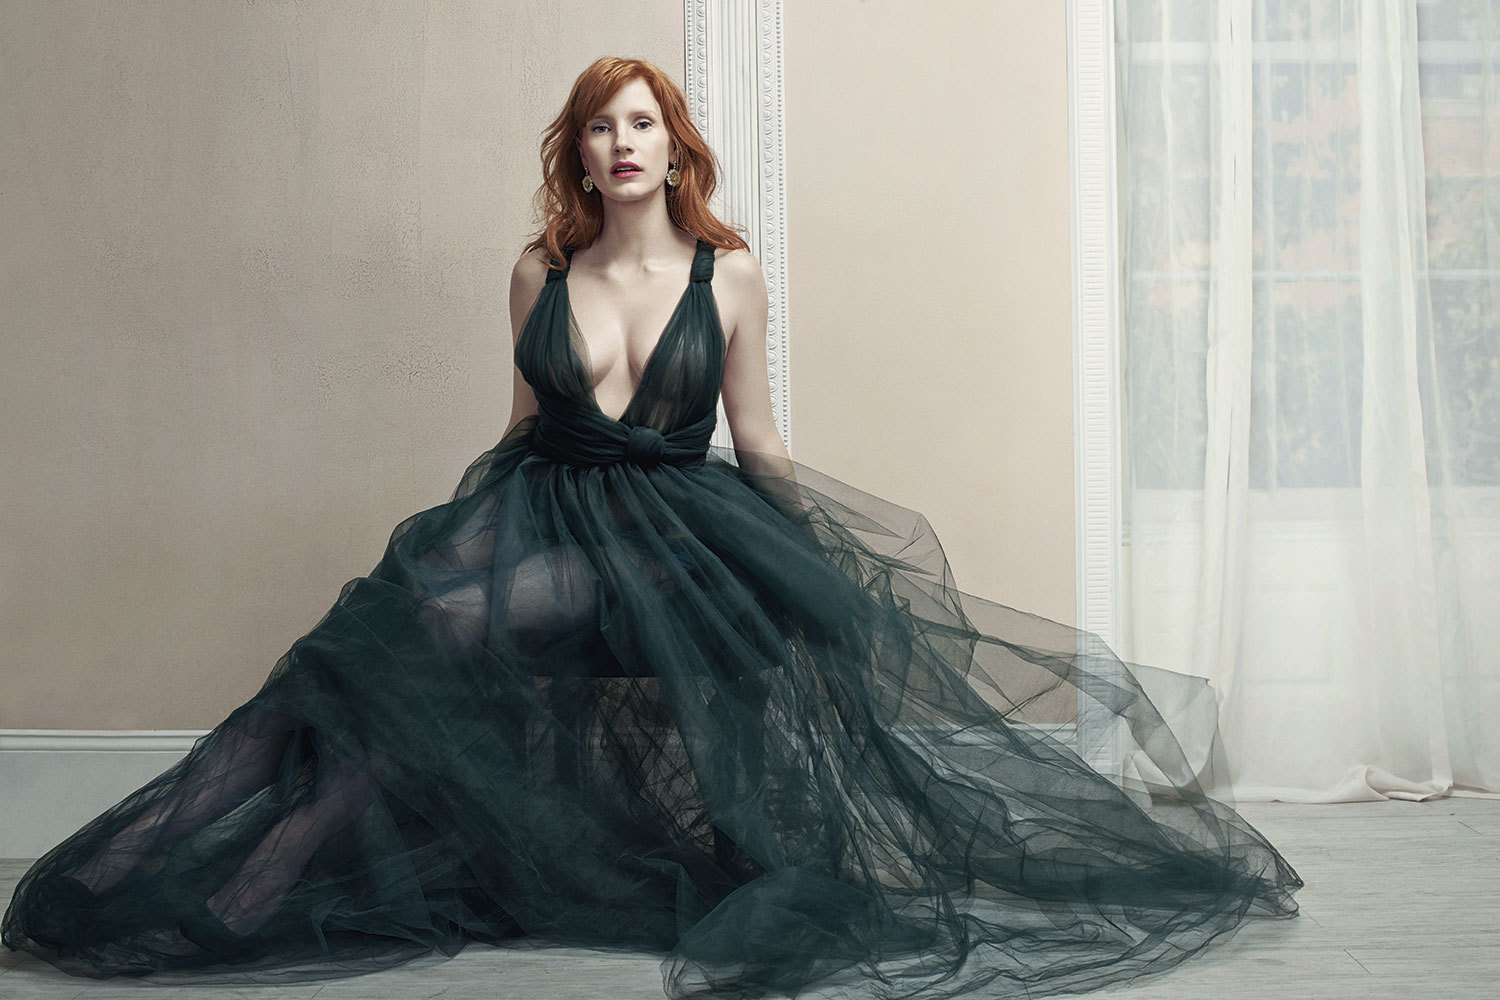 1500x1000 - Jessica Chastain Wallpapers 7